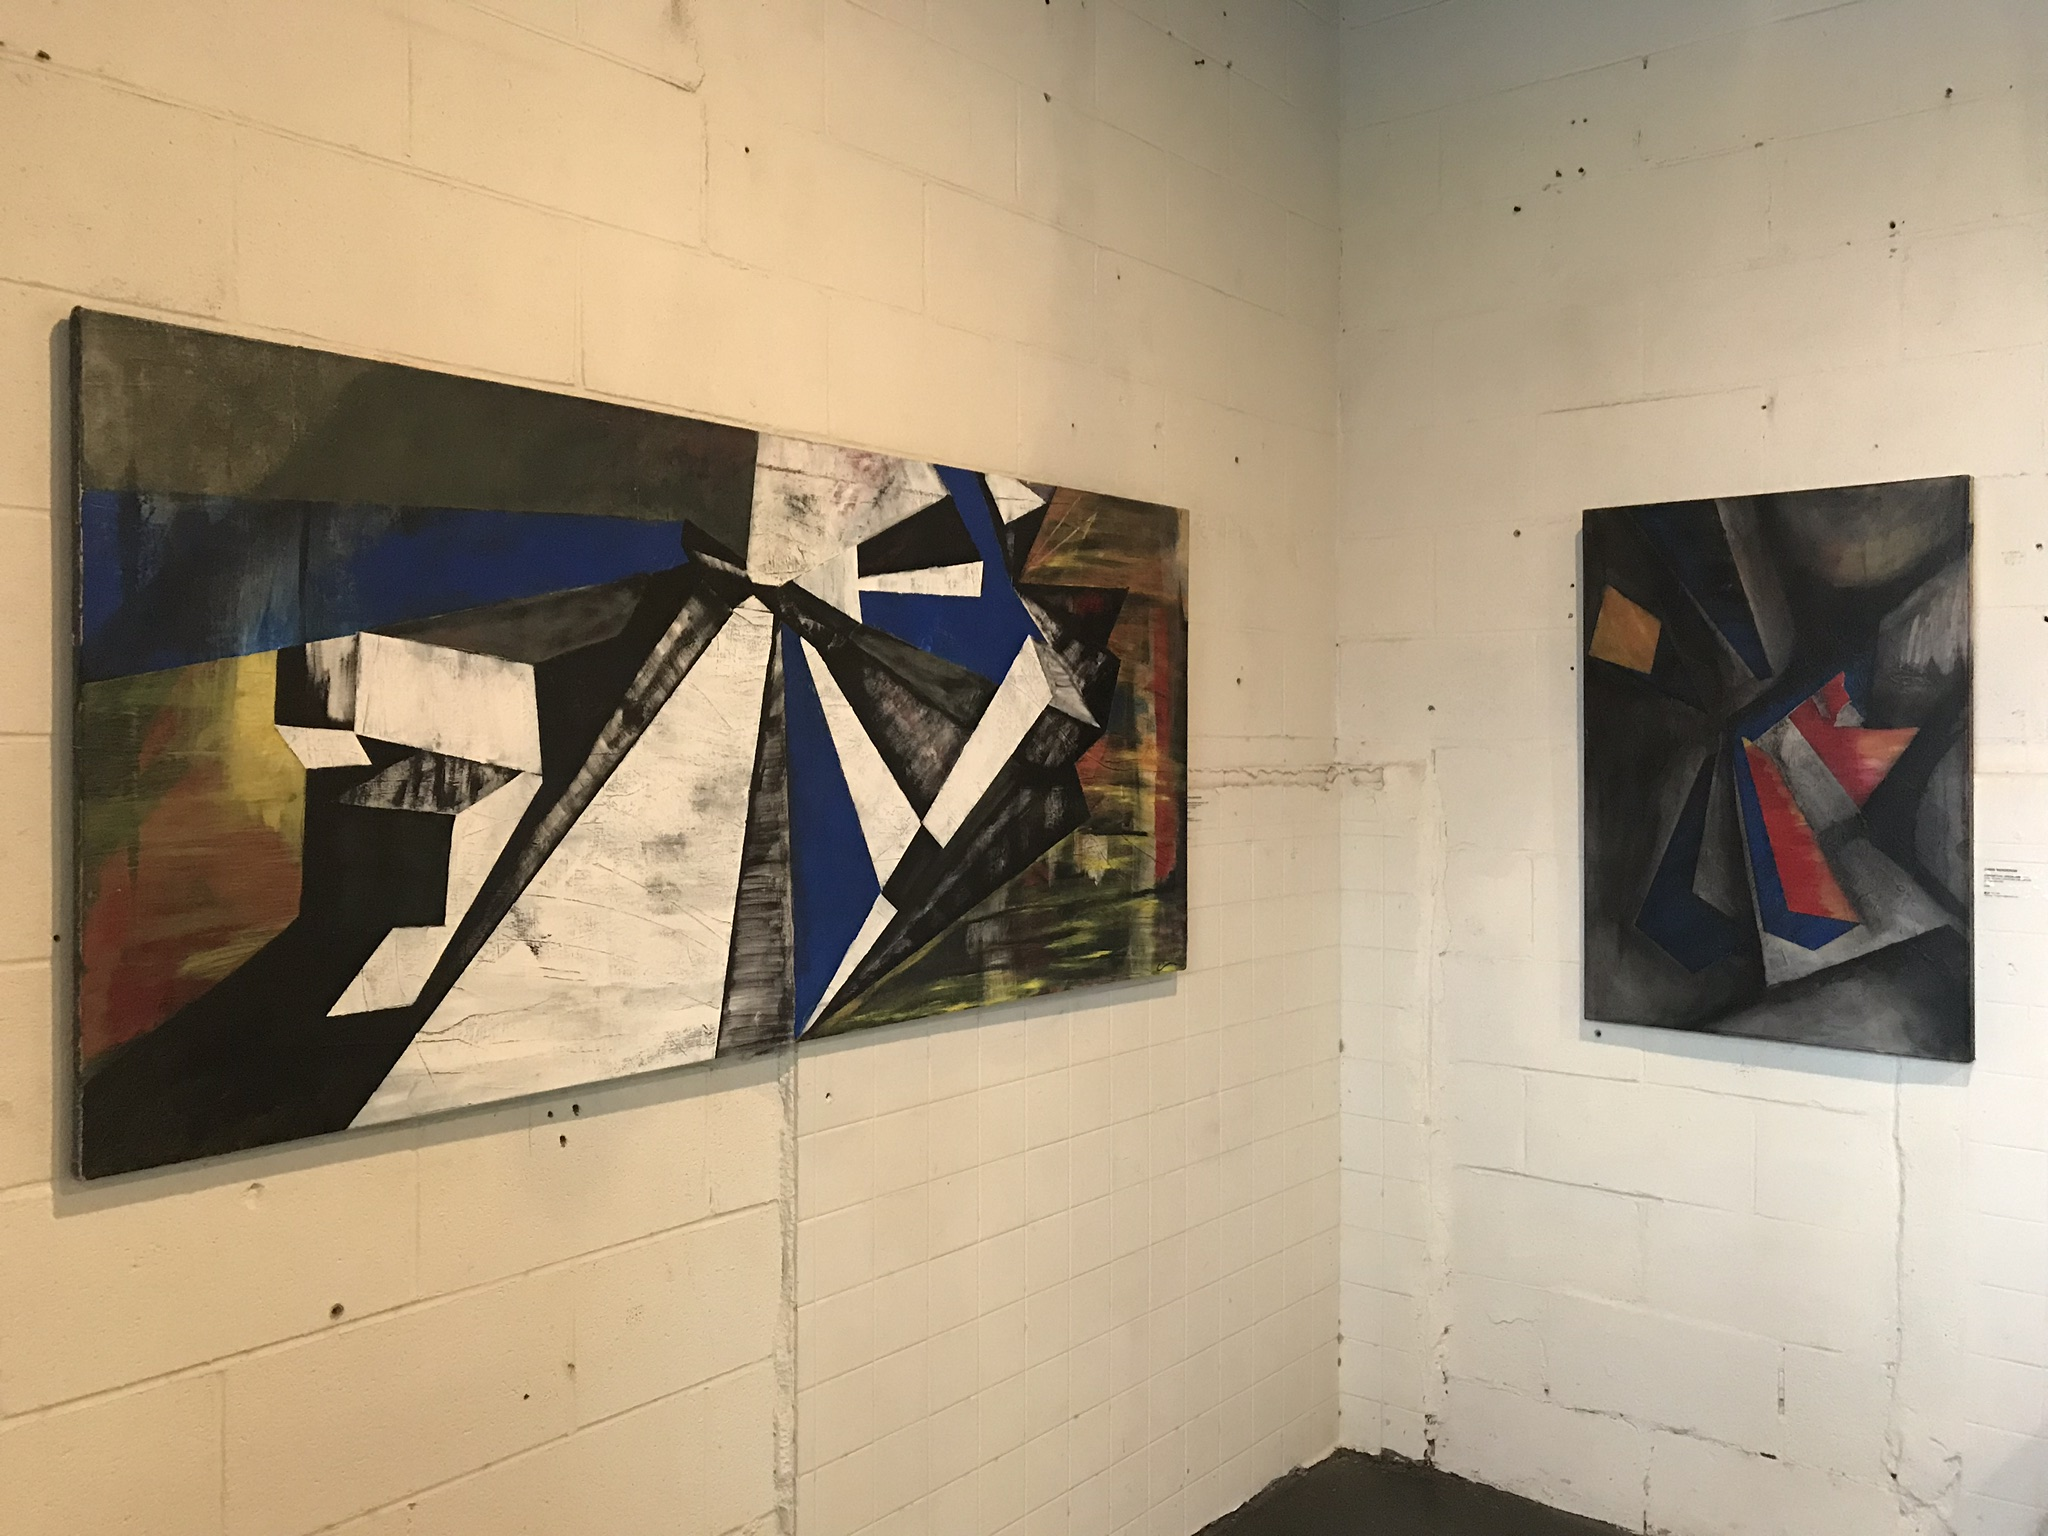 Showing at the collective